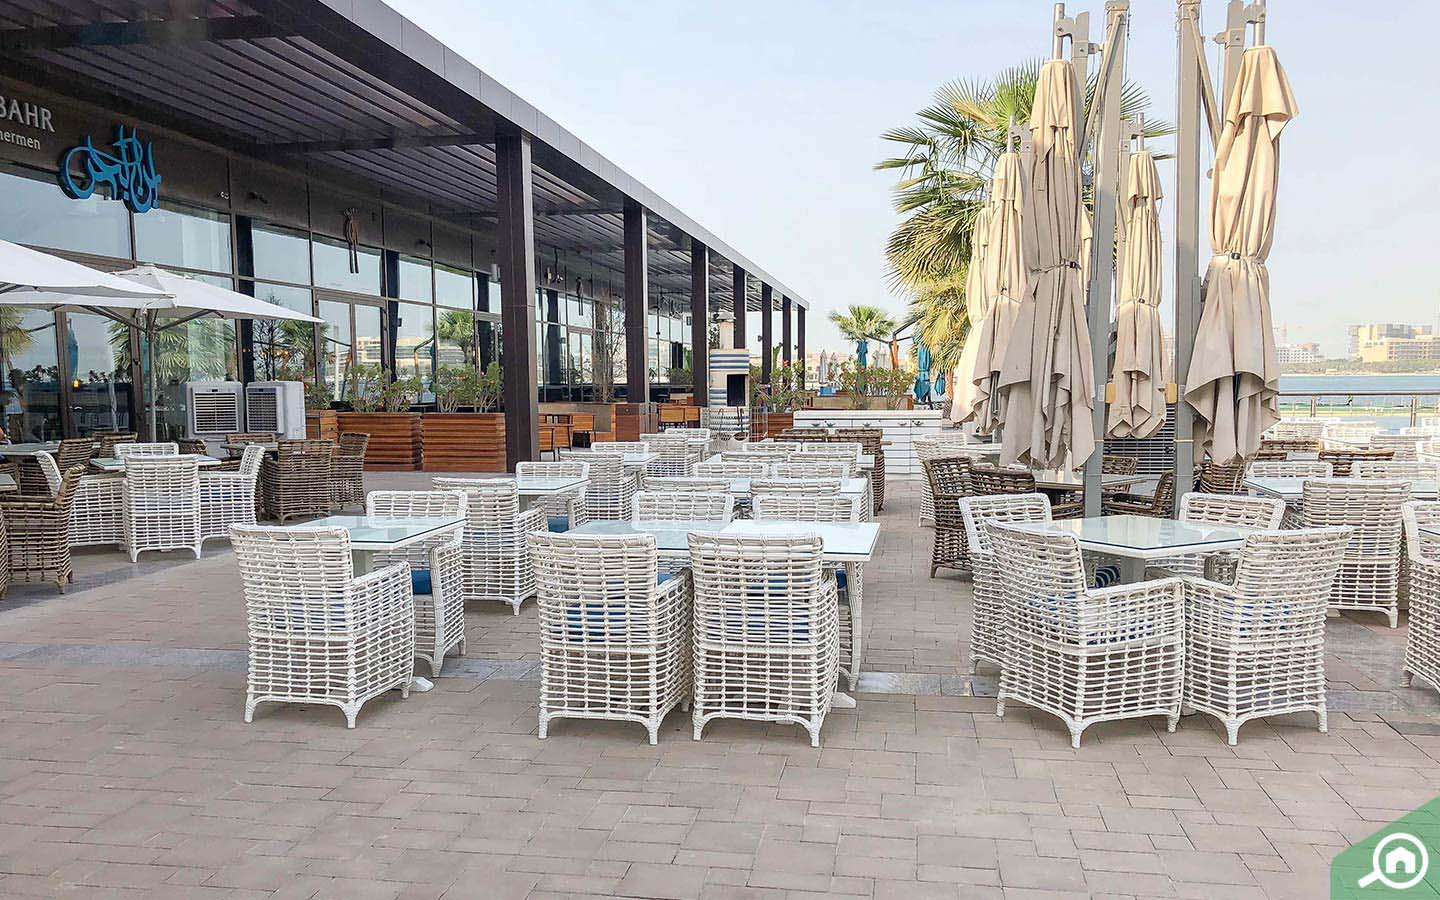 Outdoor view of one of the restaurants in Palm Jumeirah Ibn Al Bahr